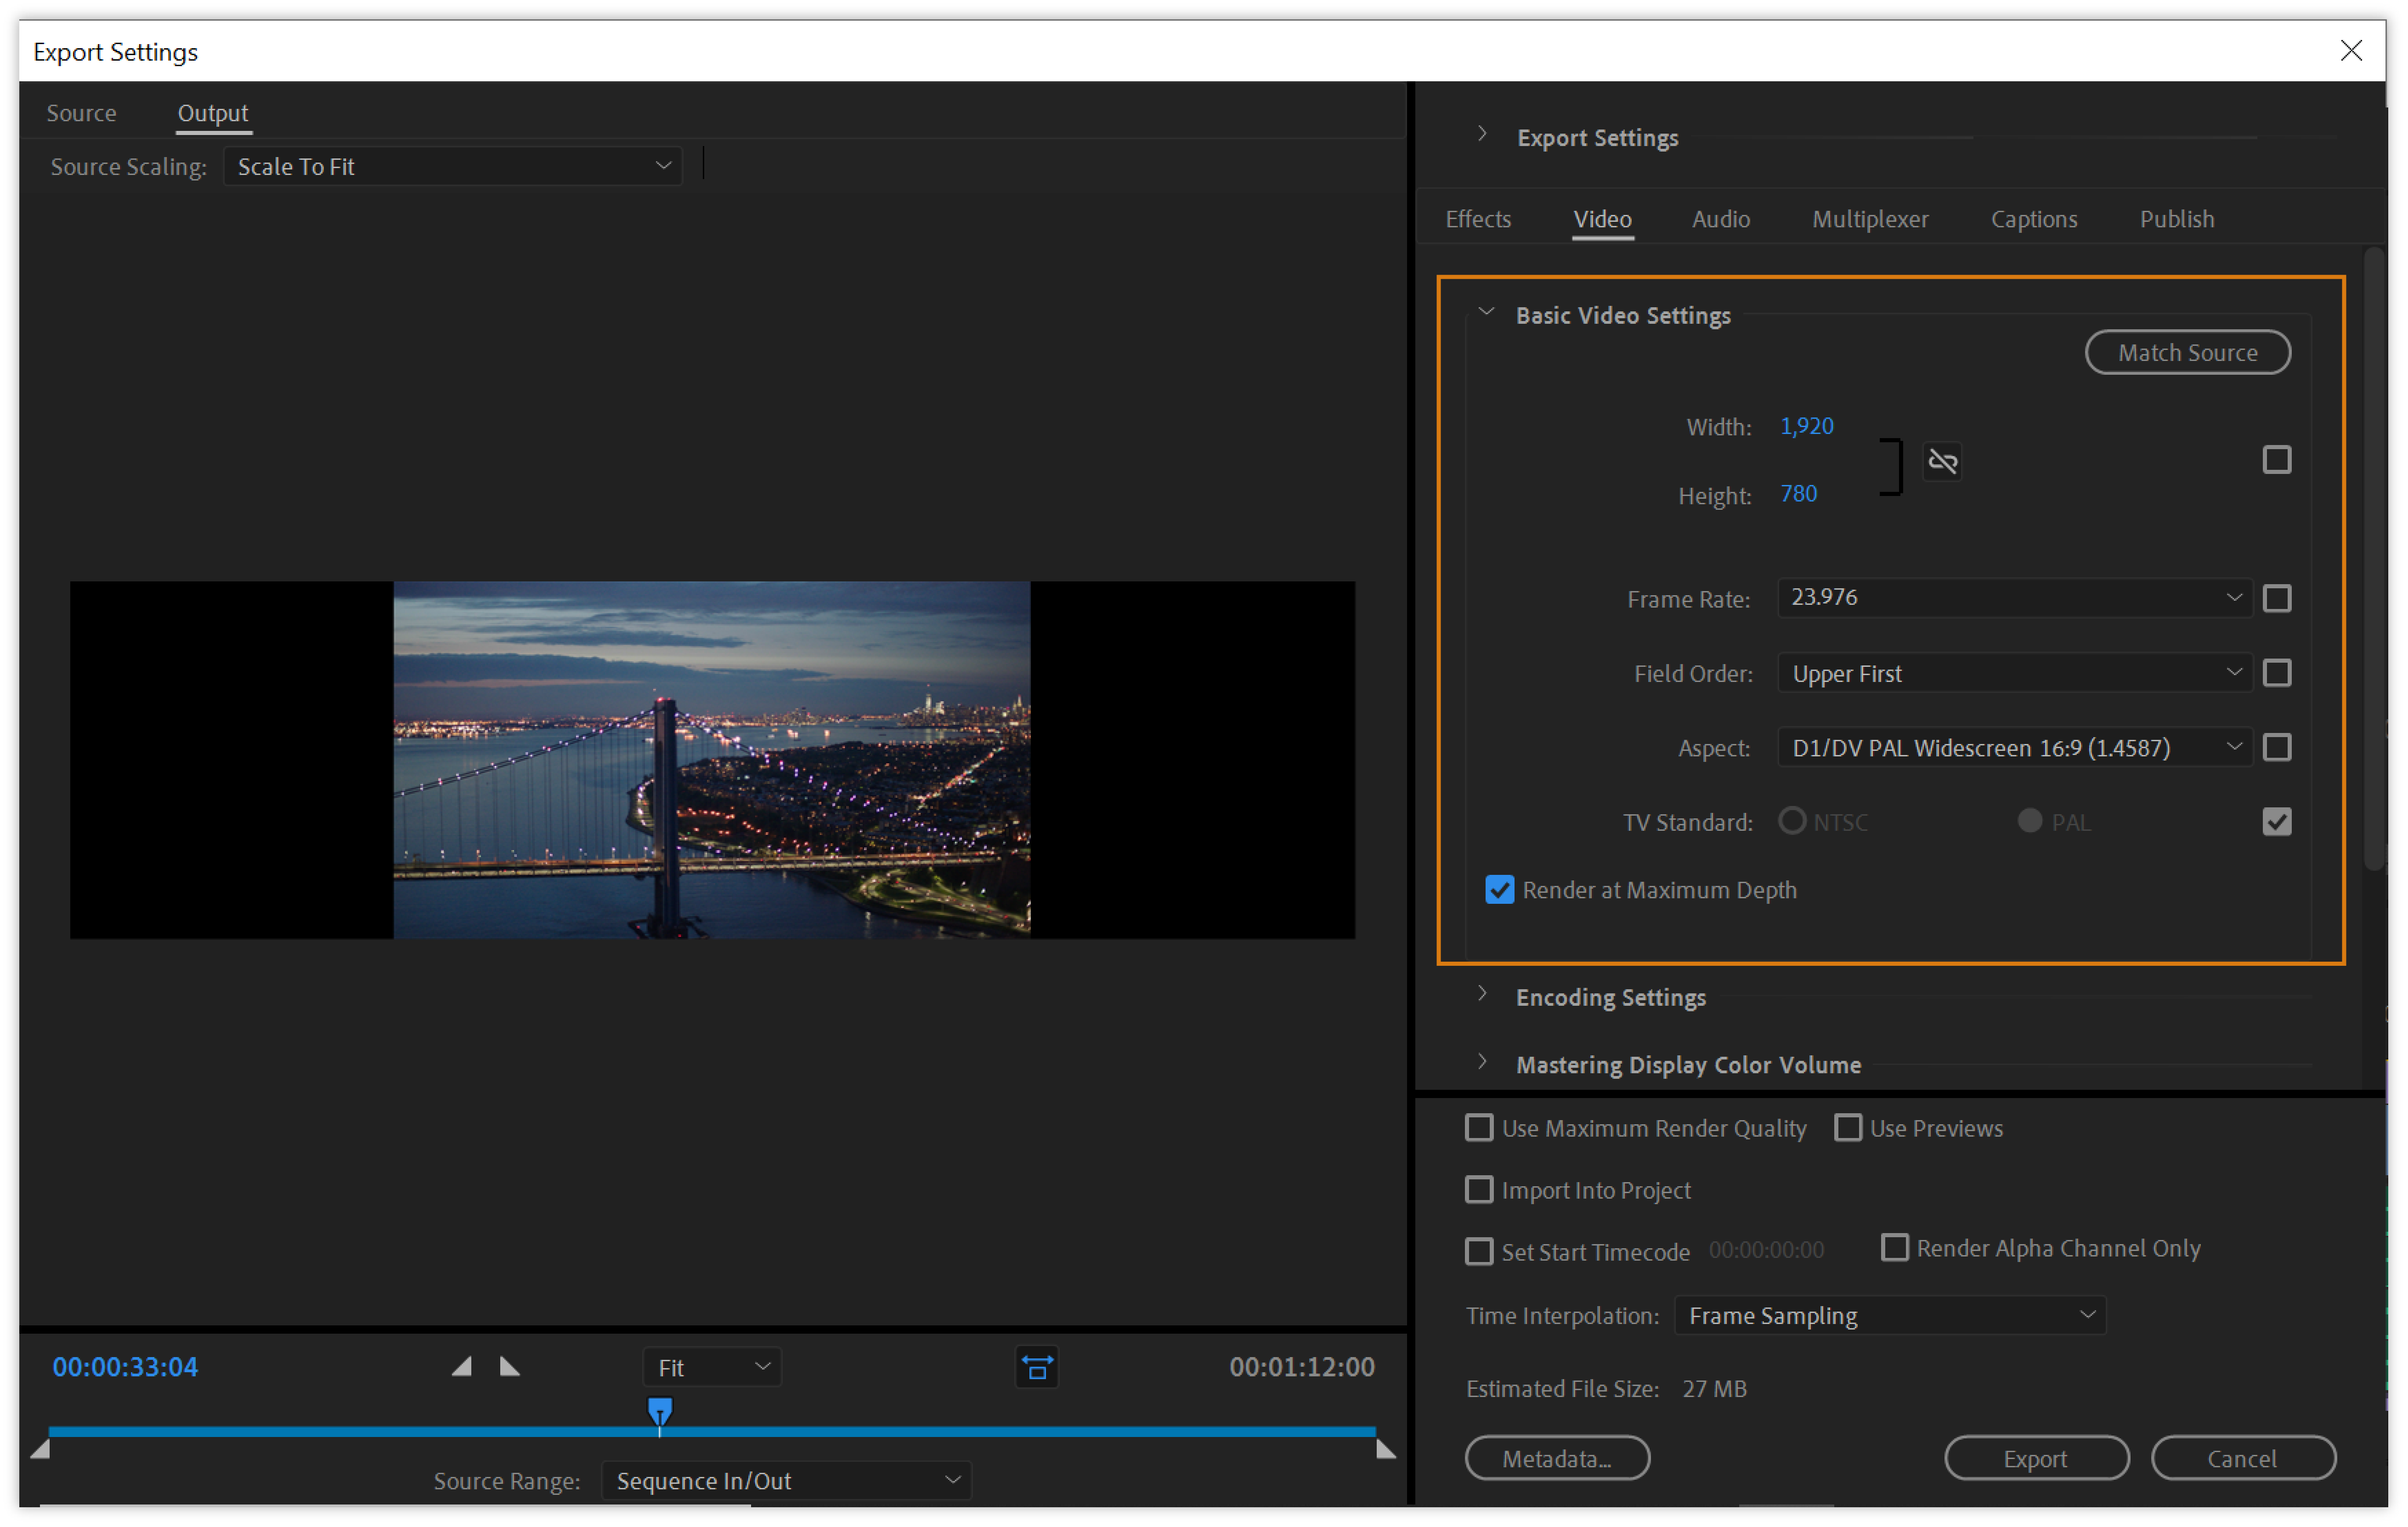 Basic video settings